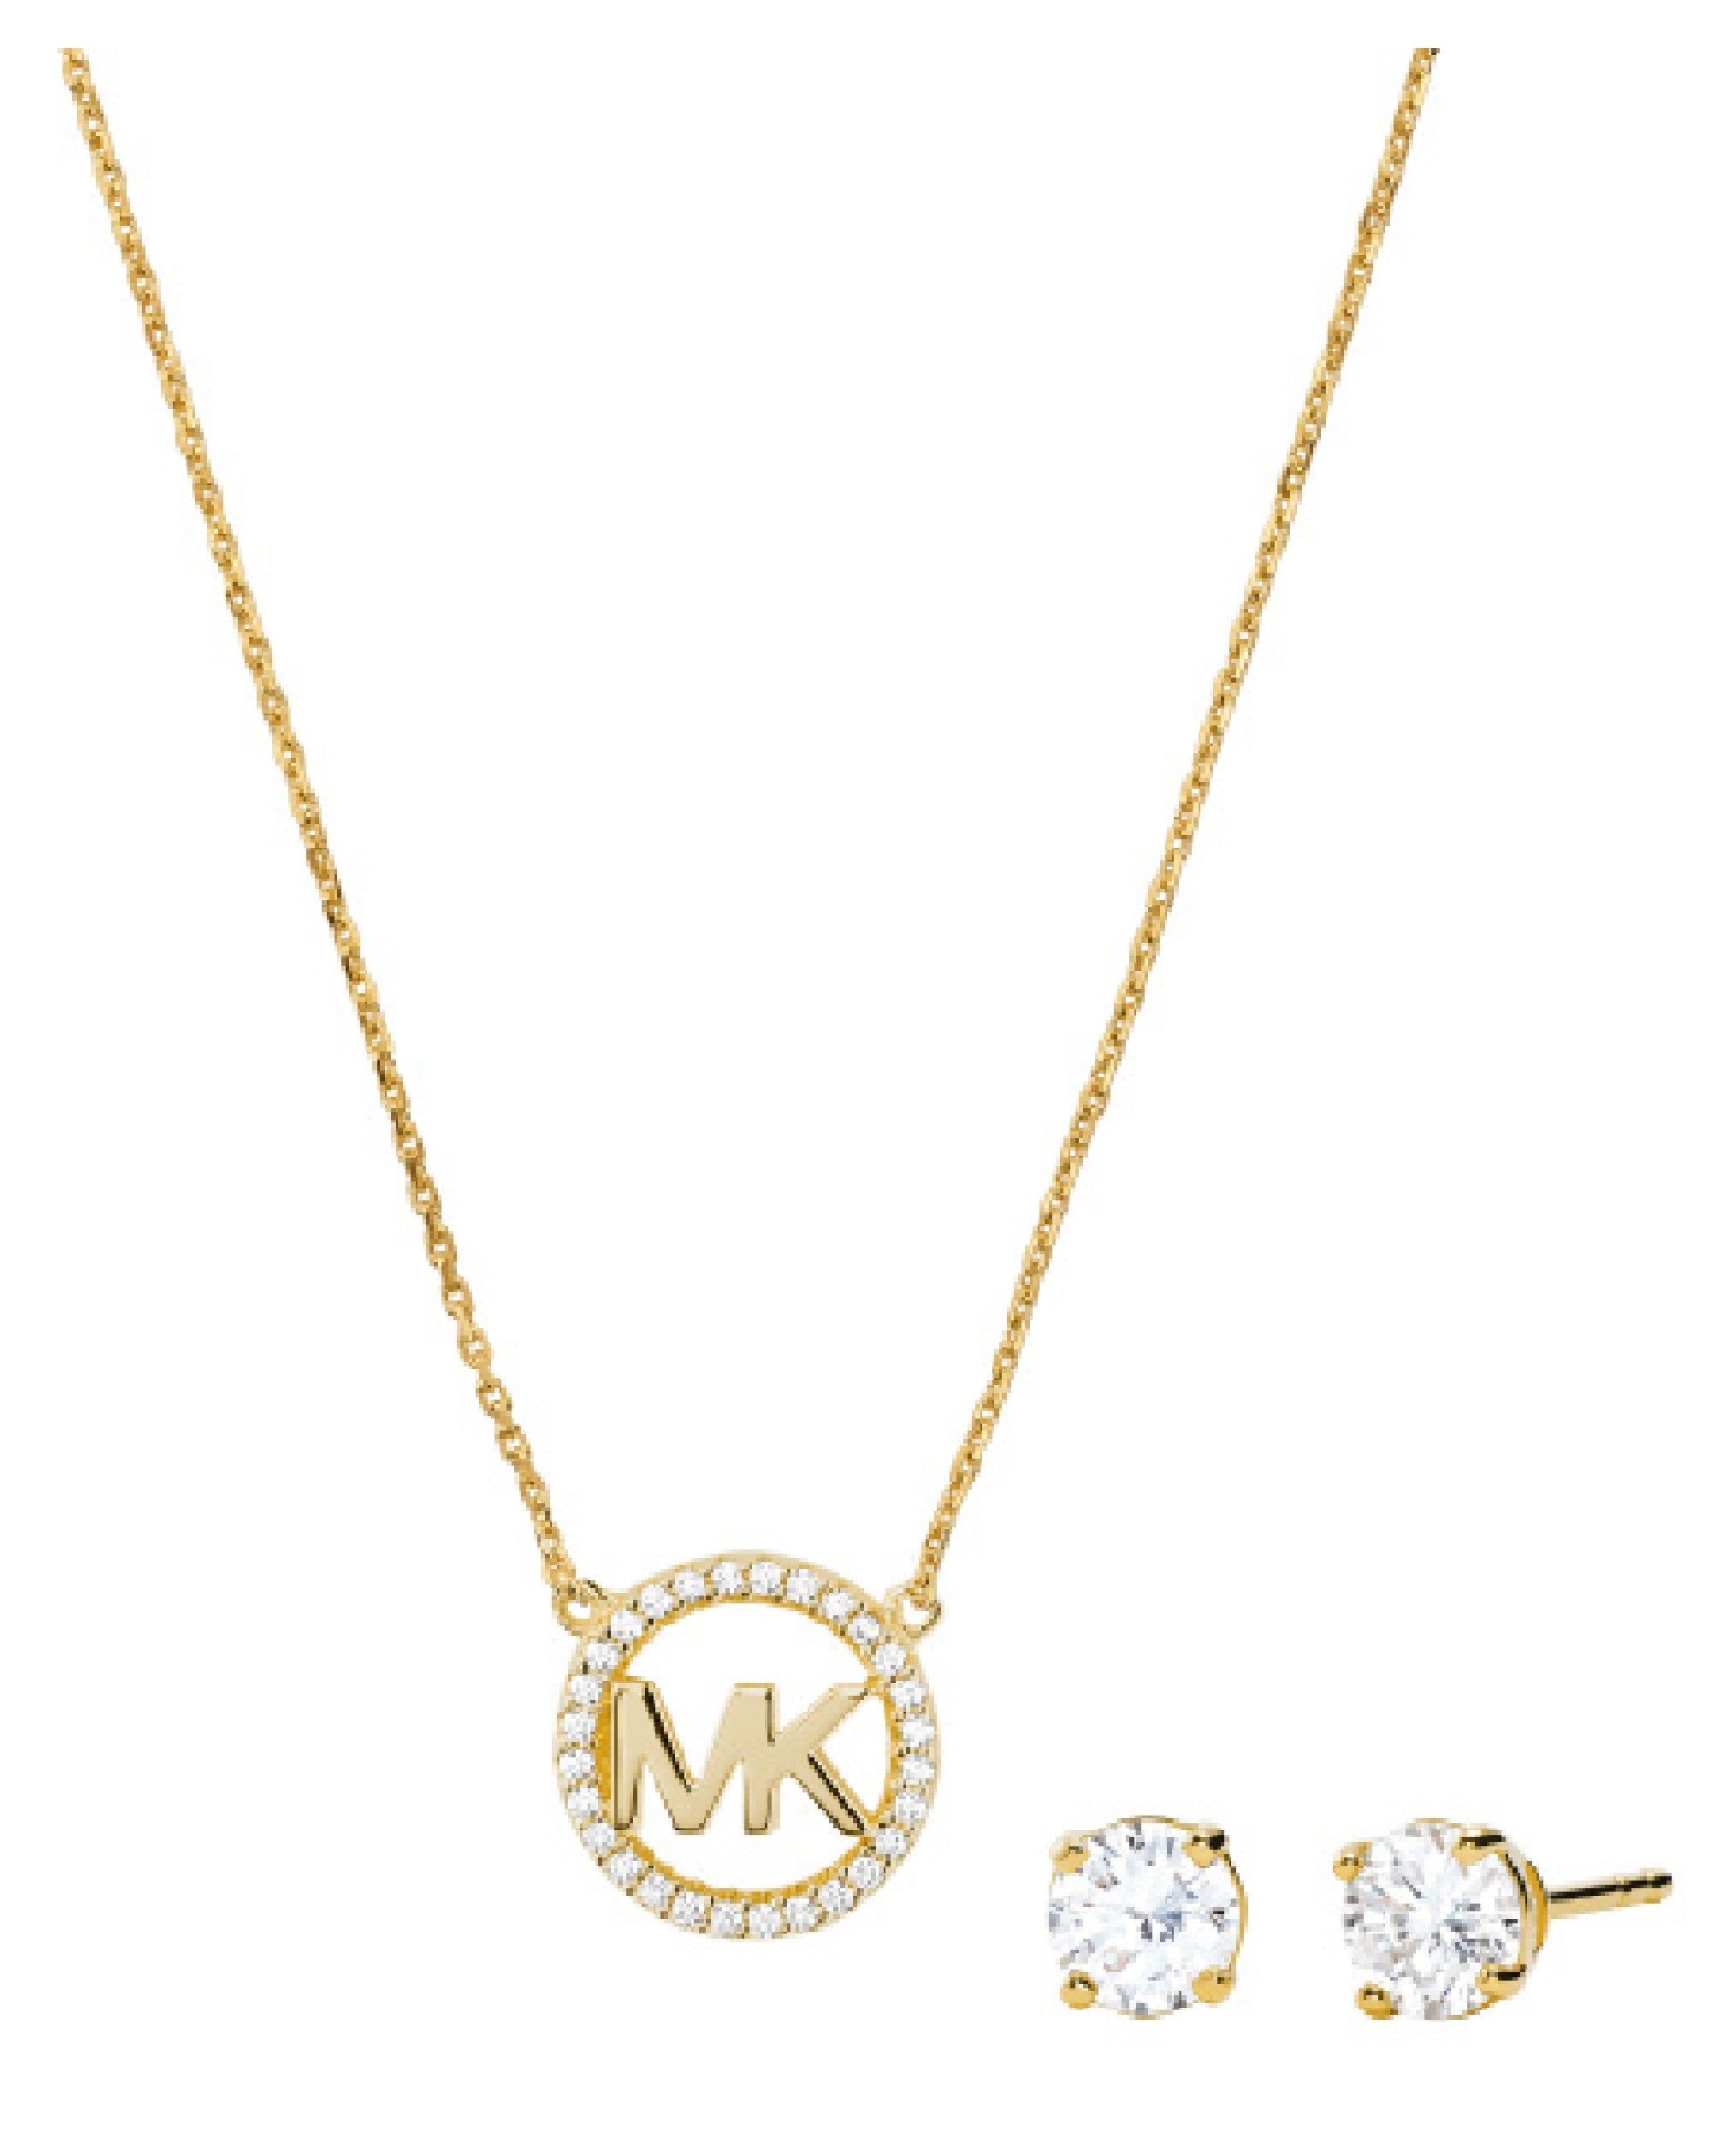 MKC1260AN710 MK Jewelry Full Set Necklace & Earings Yellow Tone